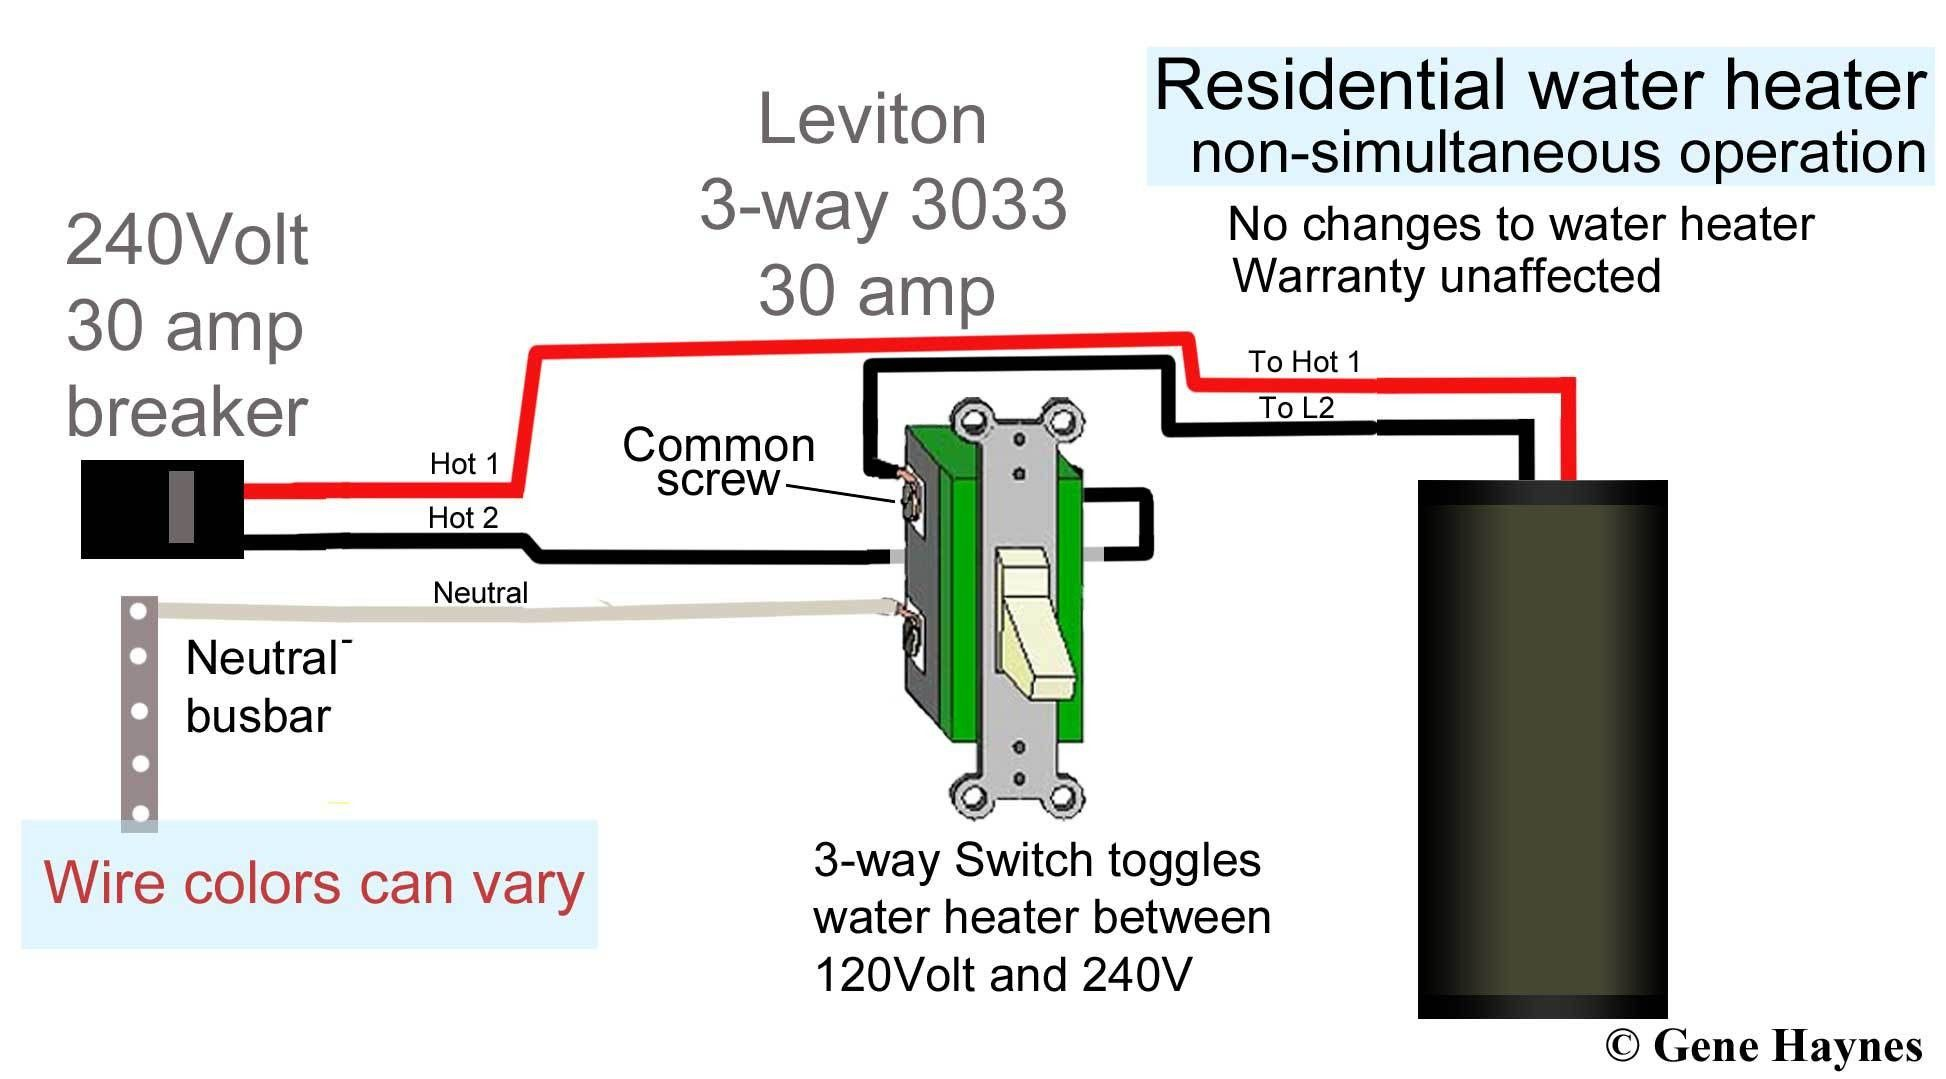 Unique Light Switch Connection Diagram Diagram Wiringdiagram Diagramming Diagramm Visual Light Switch Wiring Thermostat Wiring Baseboard Heater Thermostat